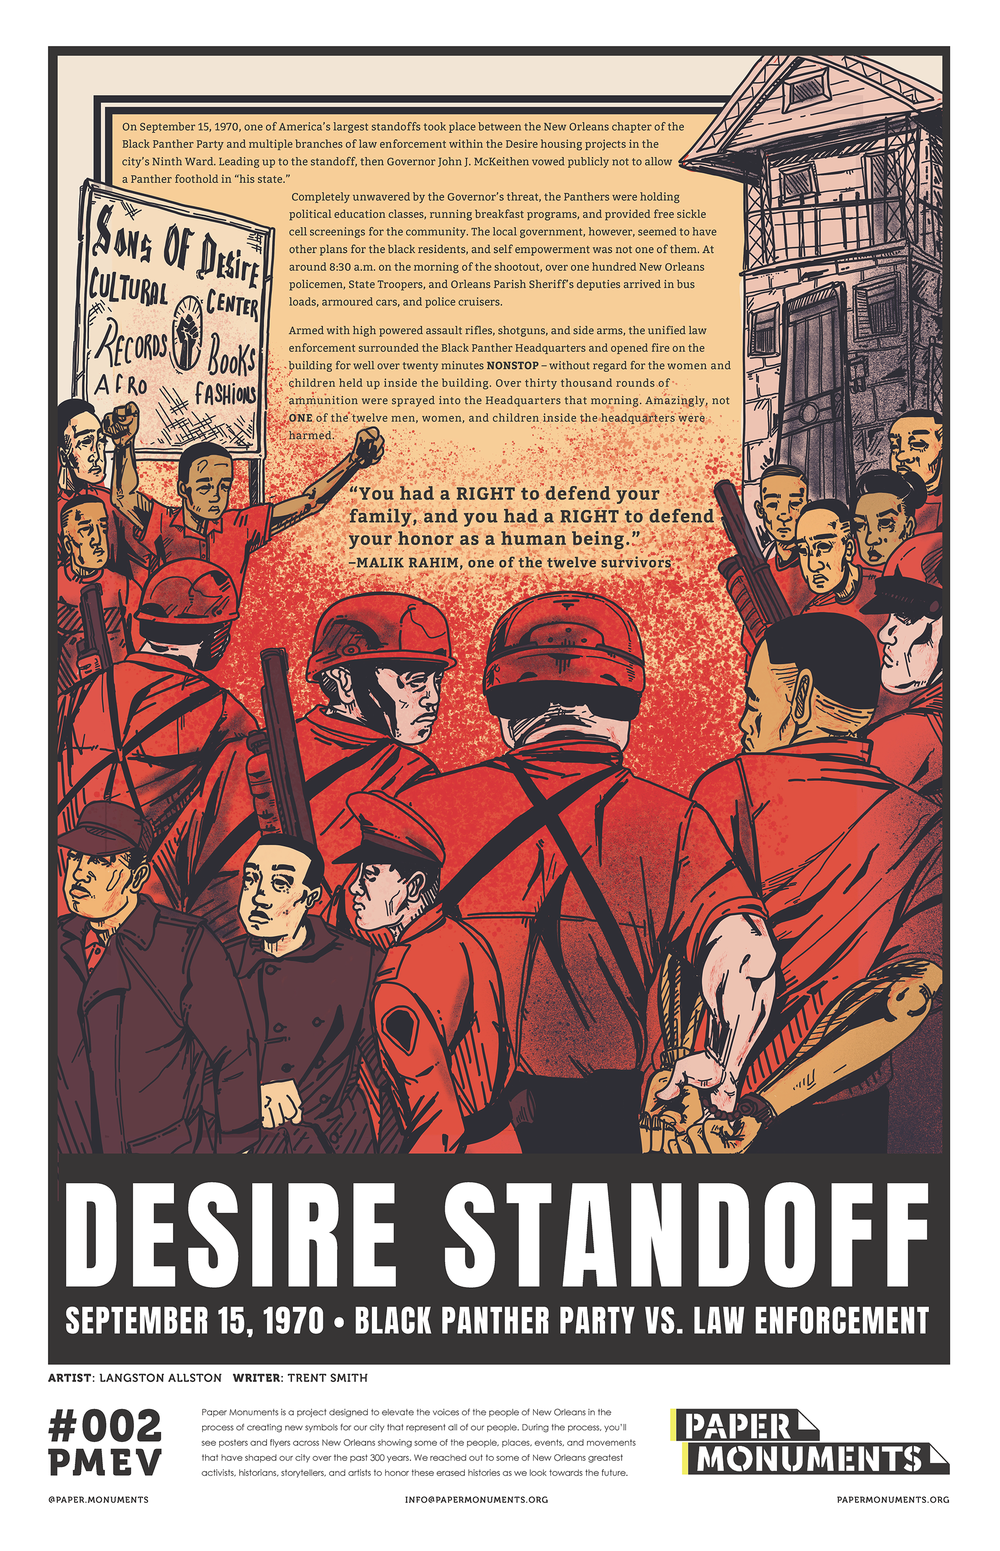 PMEV#002_DesireStandOff_LangstonAllston_bleeds.png